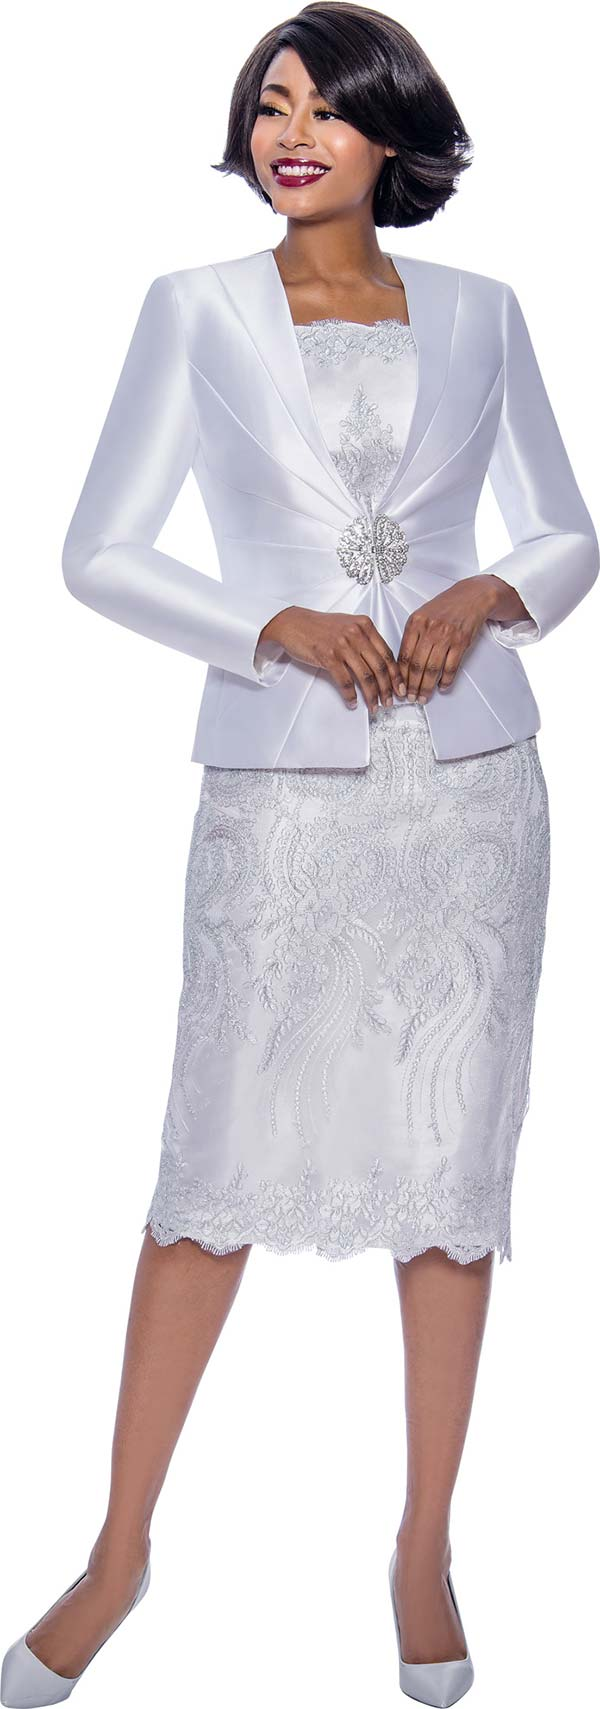 Terramina 7817 Silk Look Womens Church Suit With Lace Detailed Skirt And Camisole